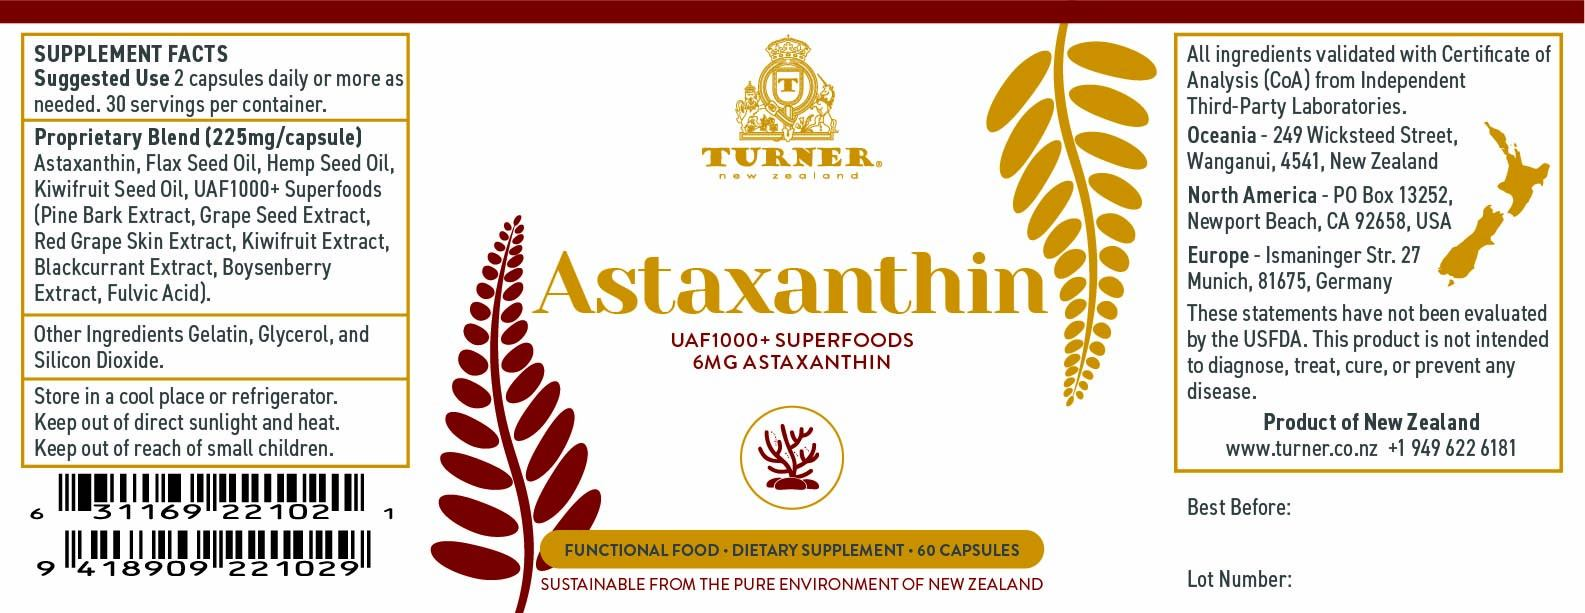 Astaxanthin Power - TURNER New Zealand